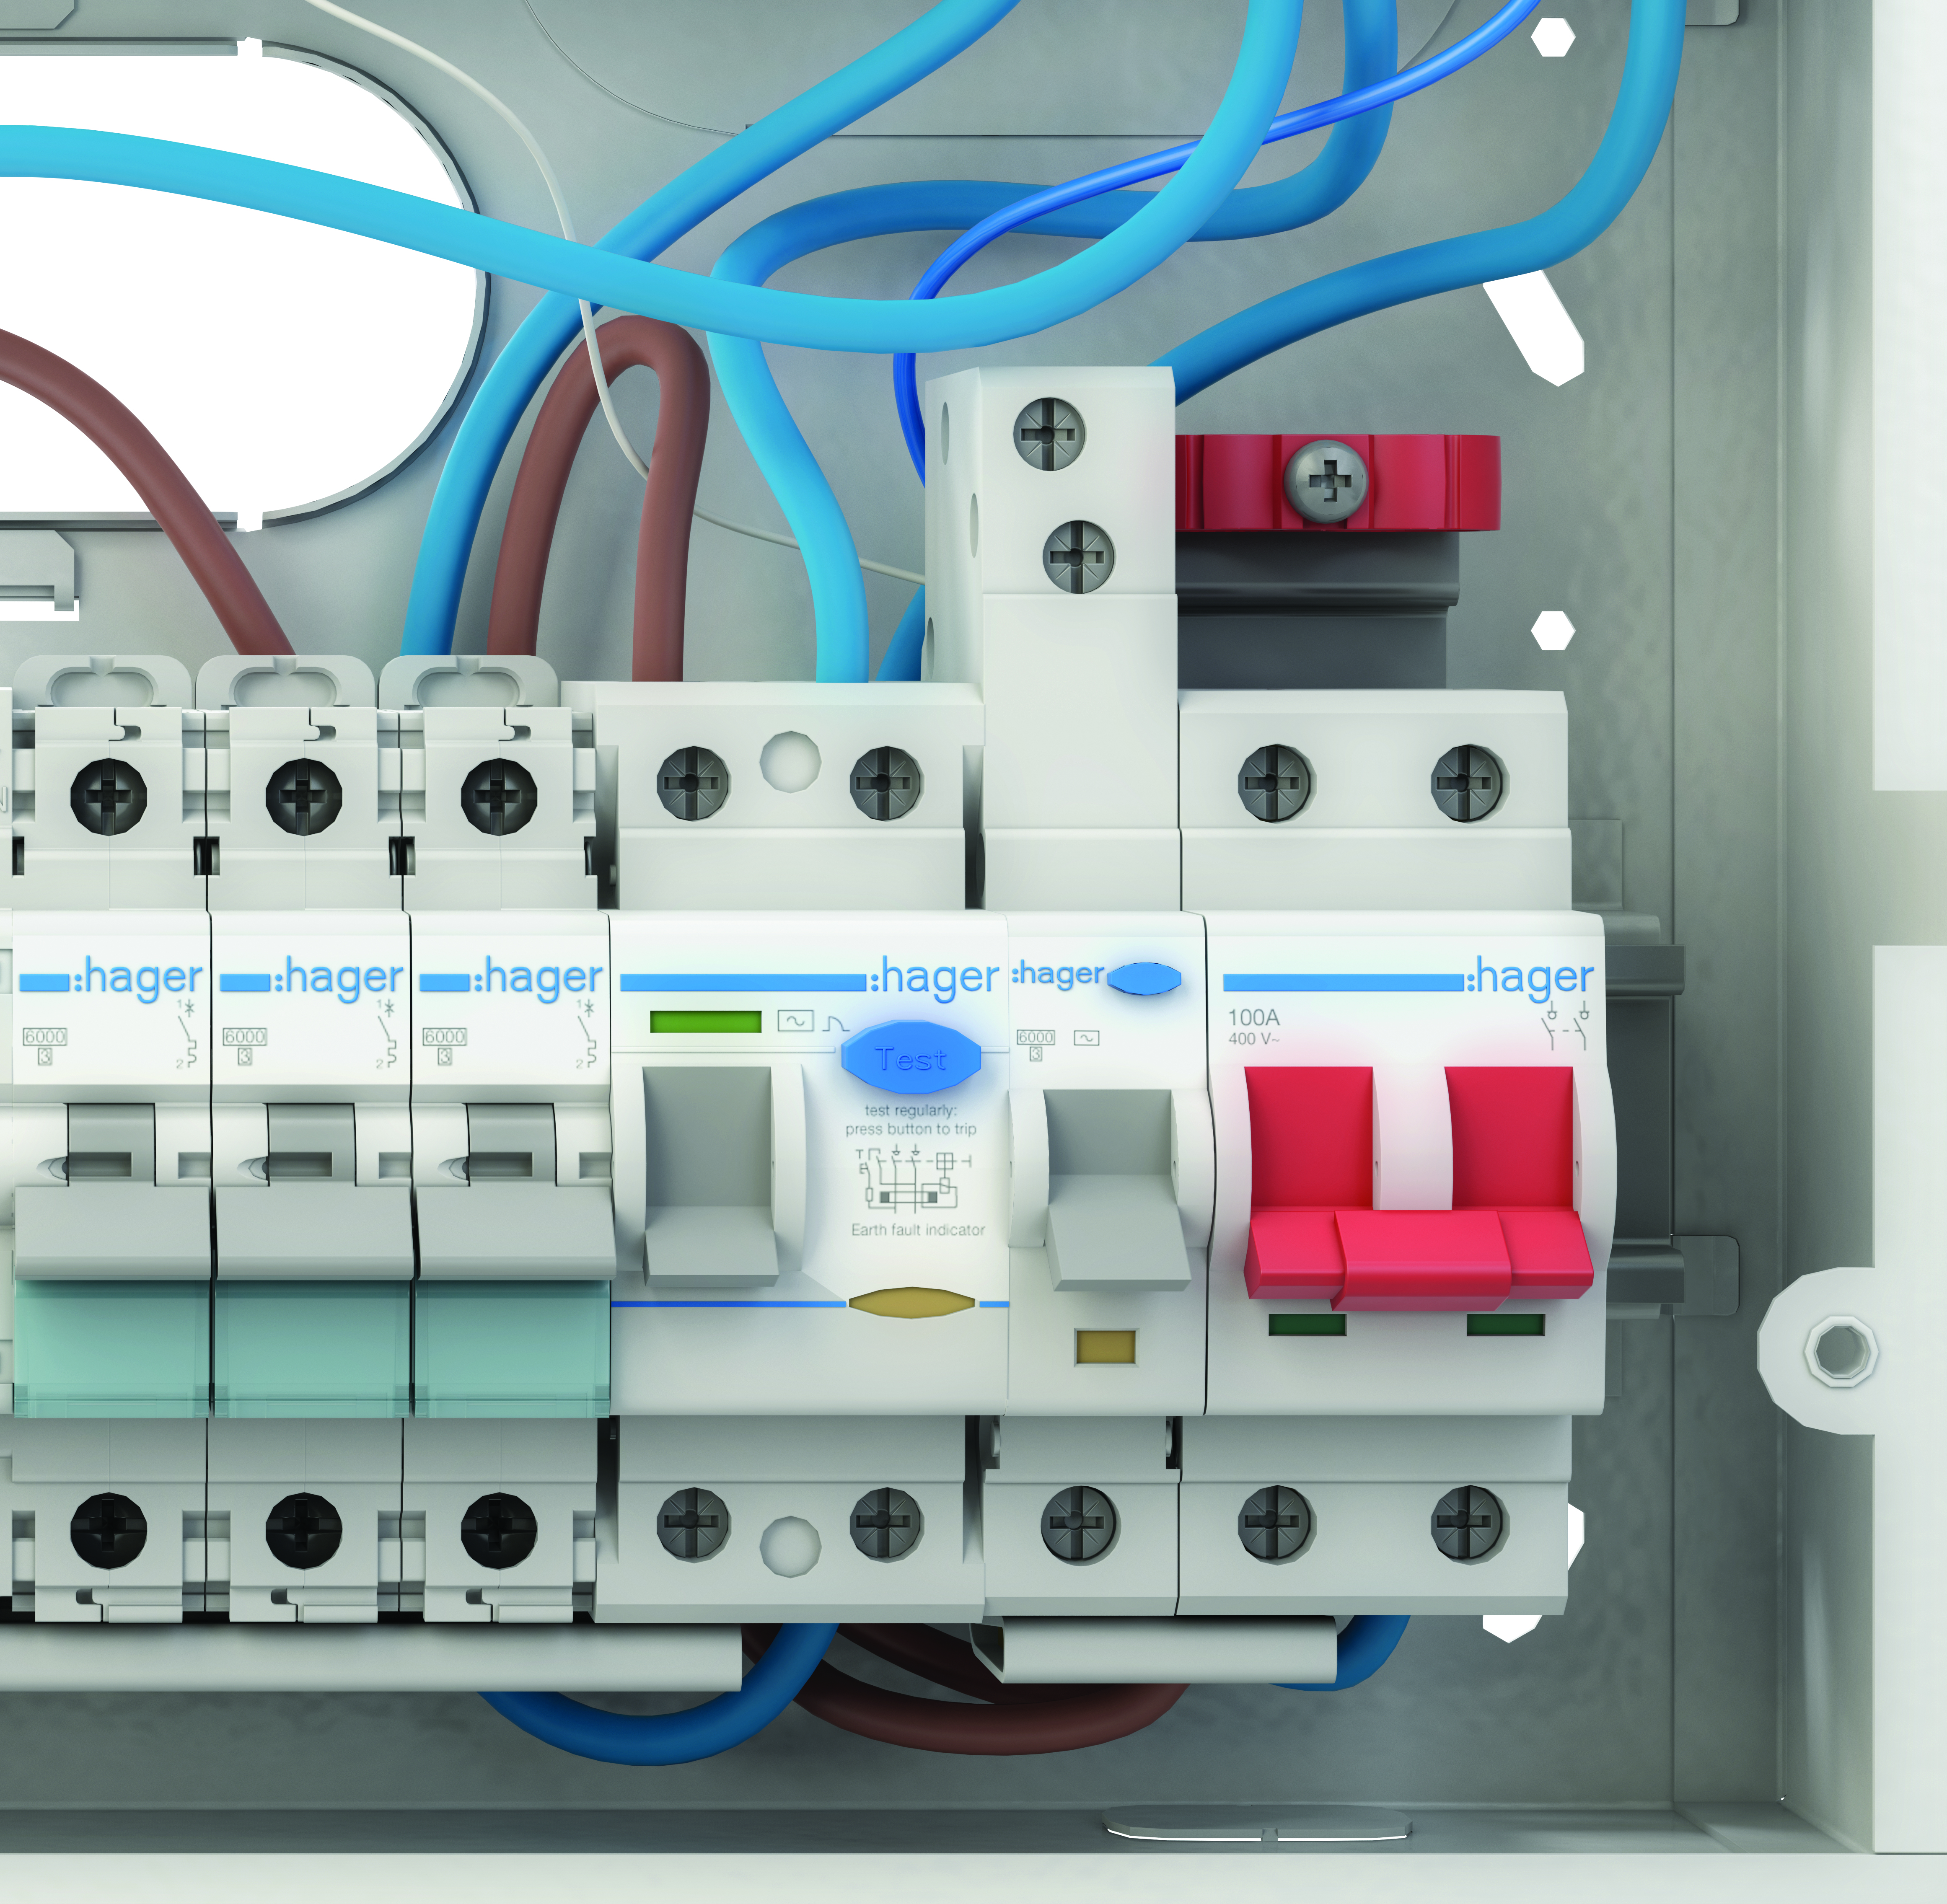 hager rcbo wiring diagram ignition system fuse box best library teams up with pro electrician to mythbreak amendment 3